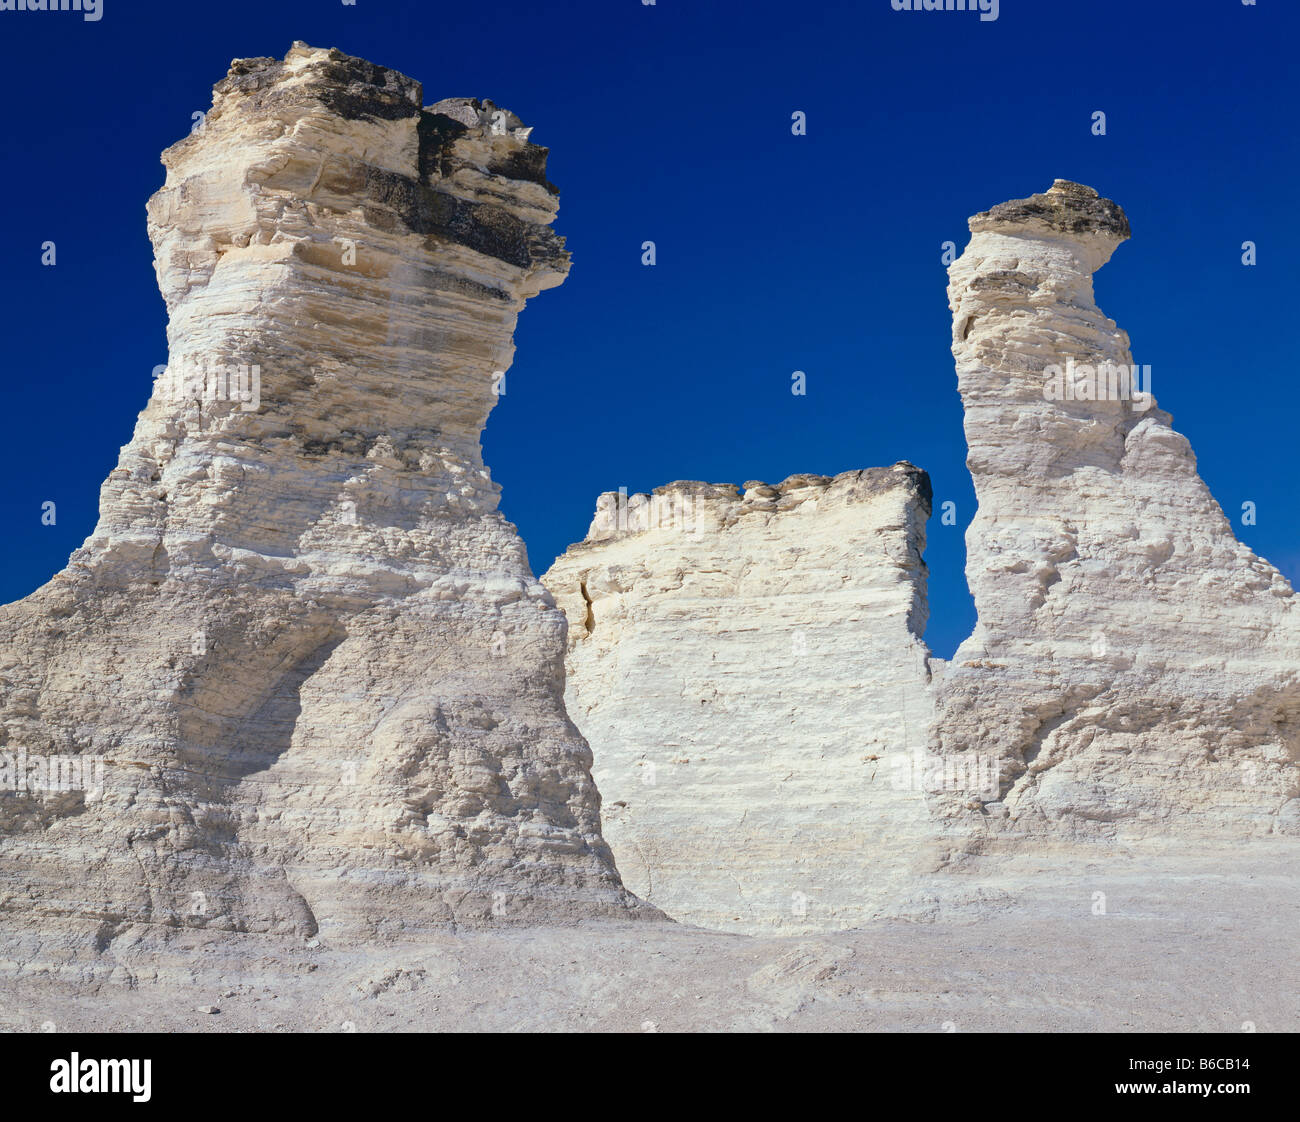 Kansas gove county grinnell - Kansas Monument Rocks A National Natural Landmark Know As The Kansas Badlands In Gove County